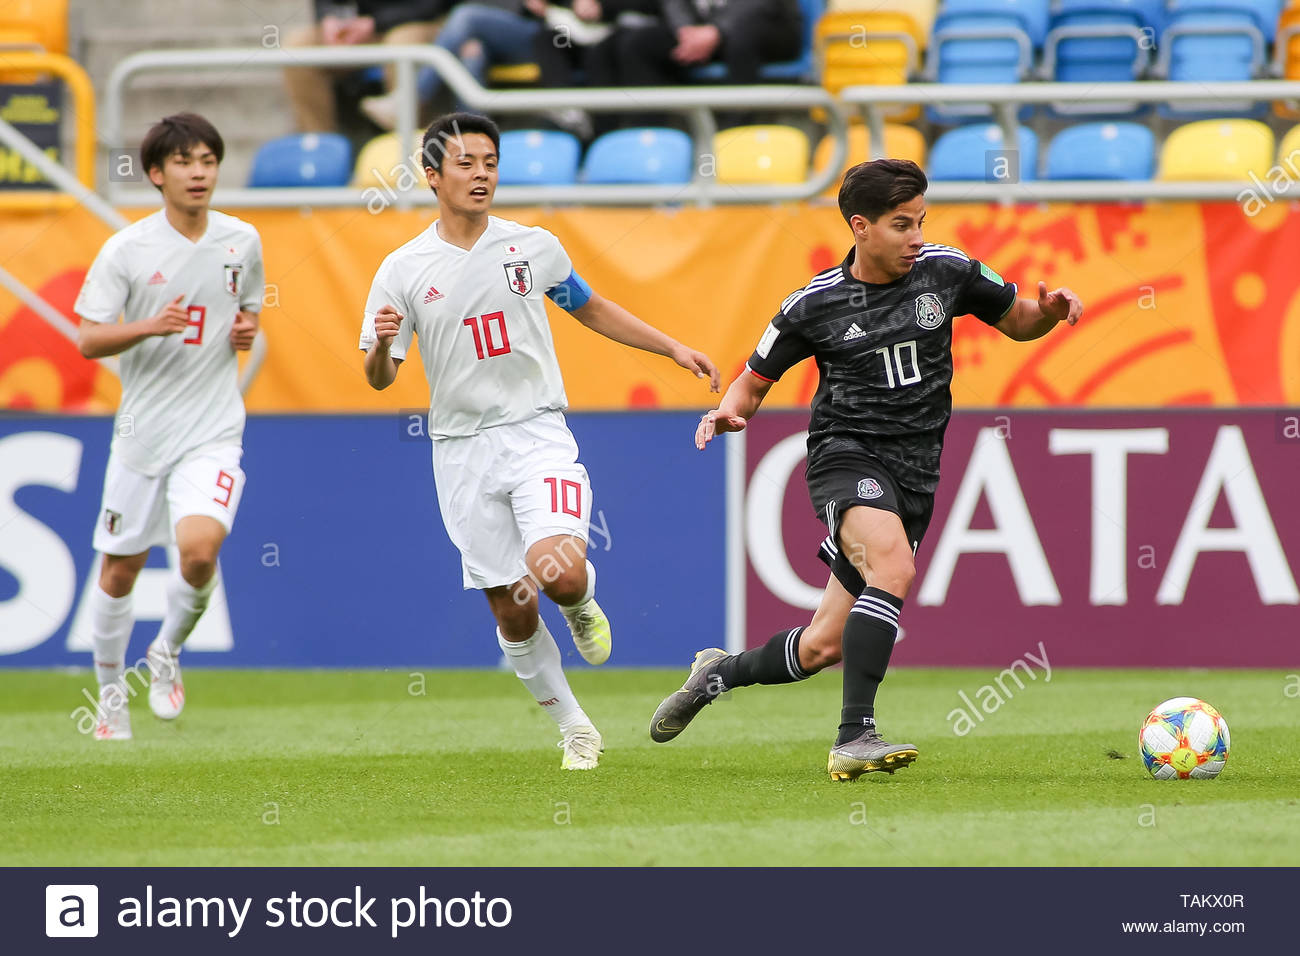 Gdynia Stadium, Gdynia, Poland - 26th May, 2019: Koki Saito (L), Mitsuki Saito (C) from Japan and Diego Lainez (R) from Mexico seen in action during FIFA U-20 World Cup match between Mexico and Japan (GROUP B) in Gdynia. (Final score; Mexico 0:3 Japan) - Stock Image